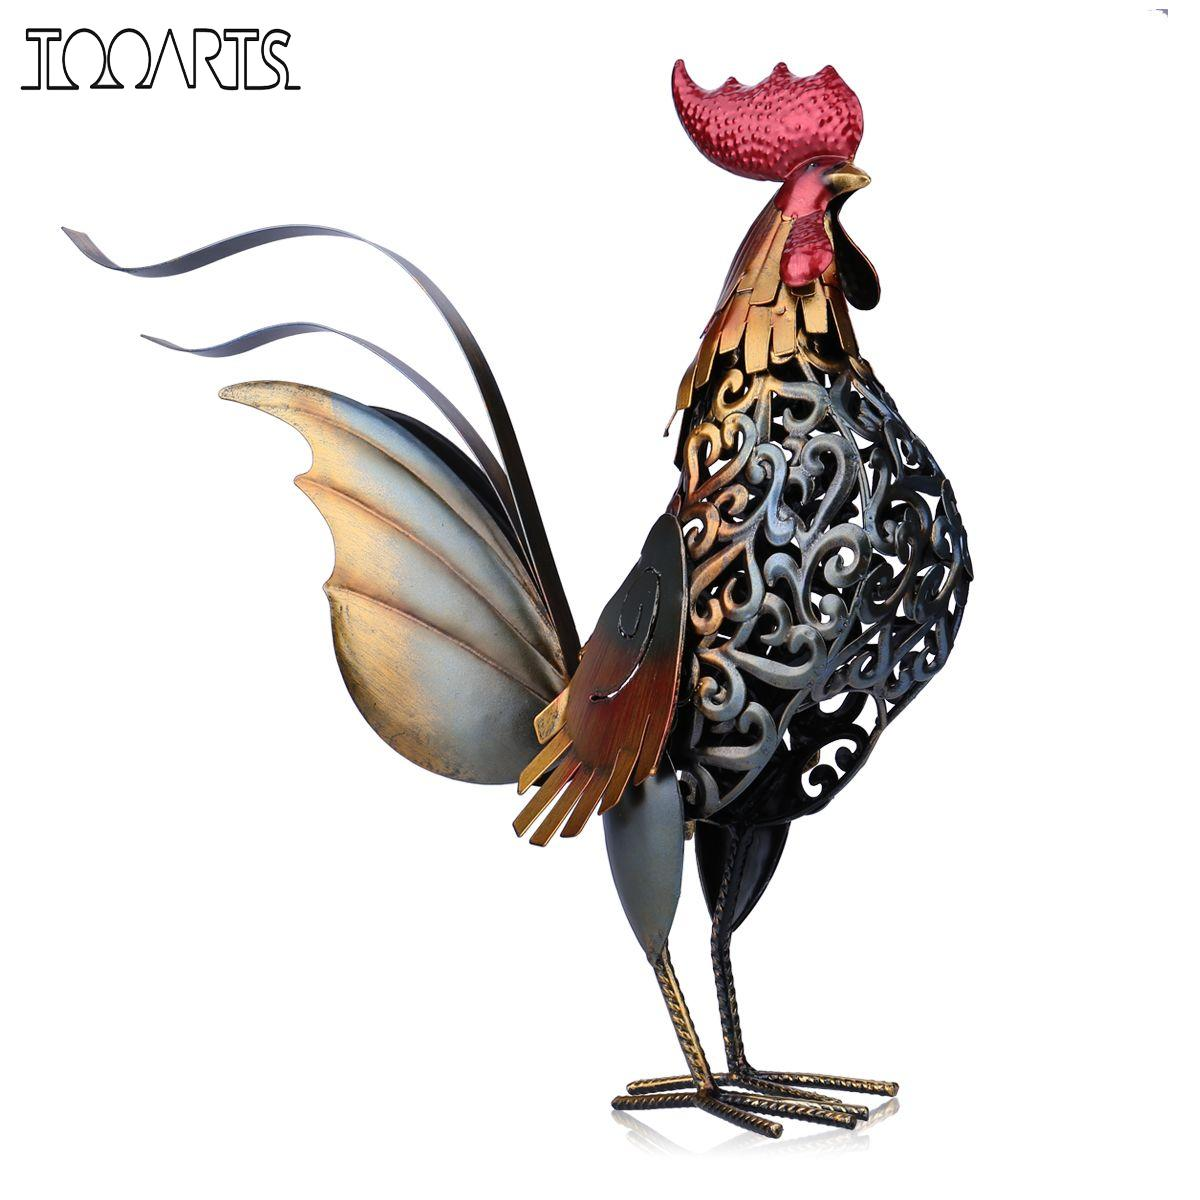 product Tooarts Metal Figurine Iron Rooster Home Decor Articles Vivid Colorful Figurine Craft Gift For Home Decoration Accessories